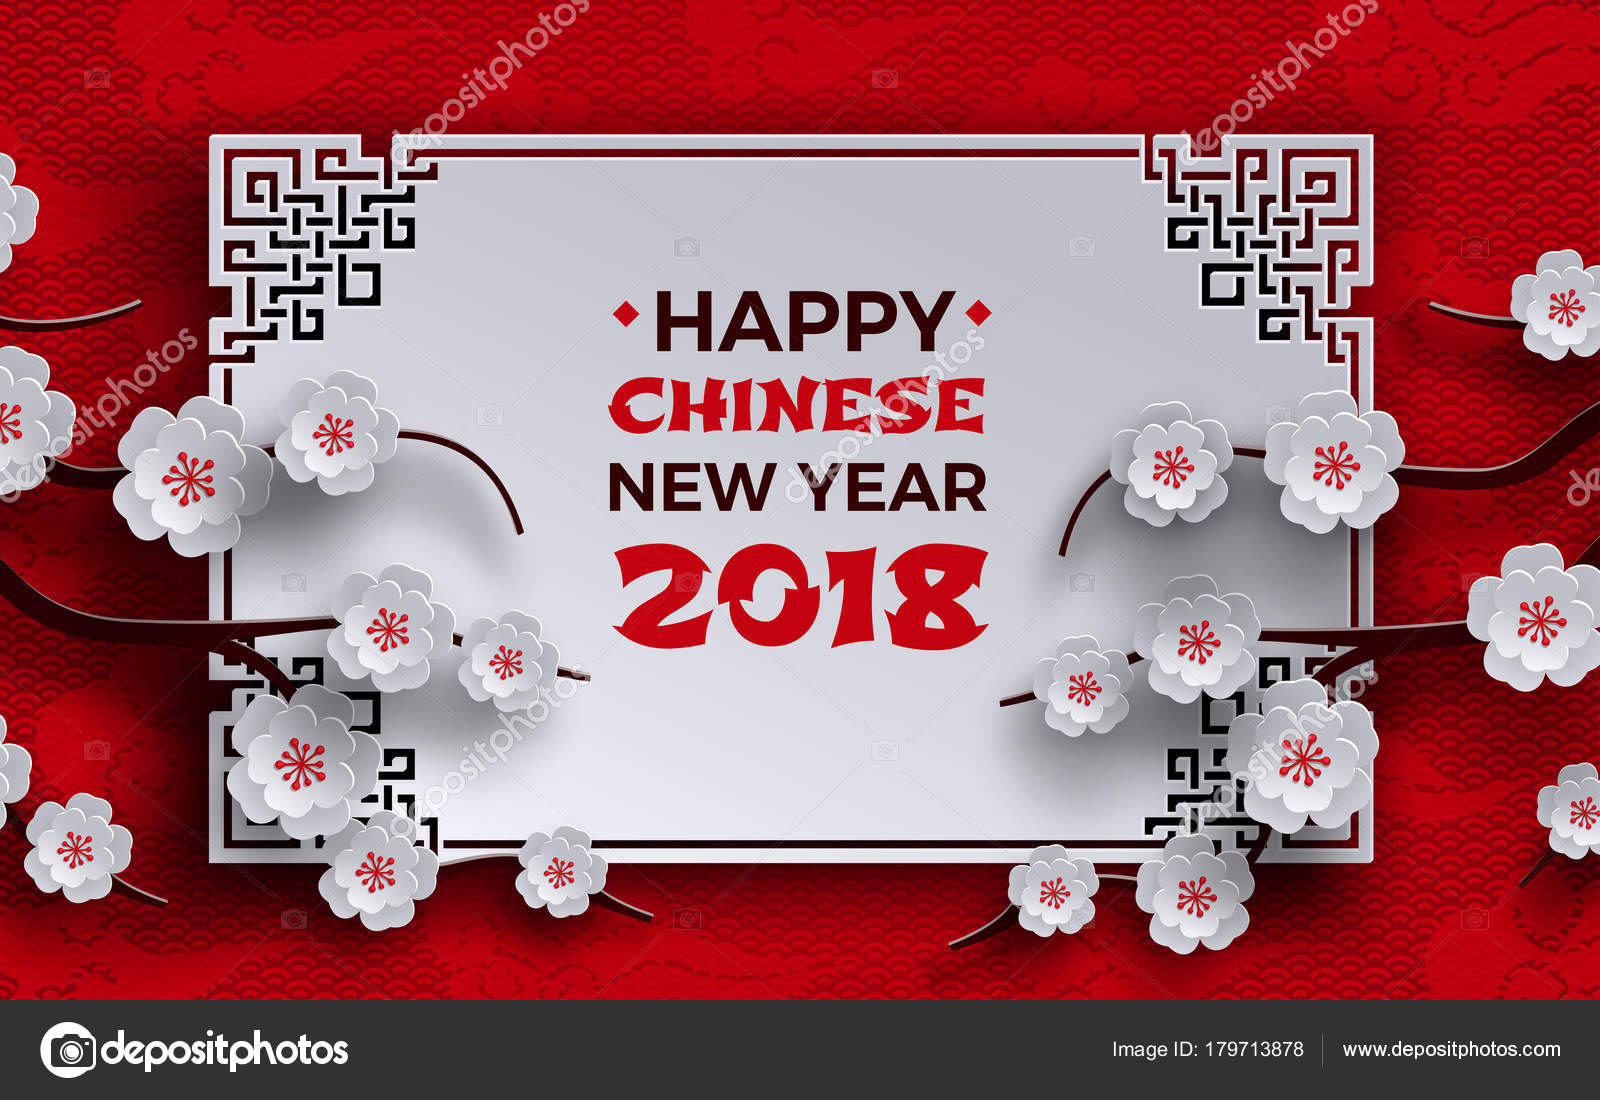 chinese new year 2018 banner white frame with sakura or cherry flowers on red pattern background with oriental asian clouds design elements for greeting